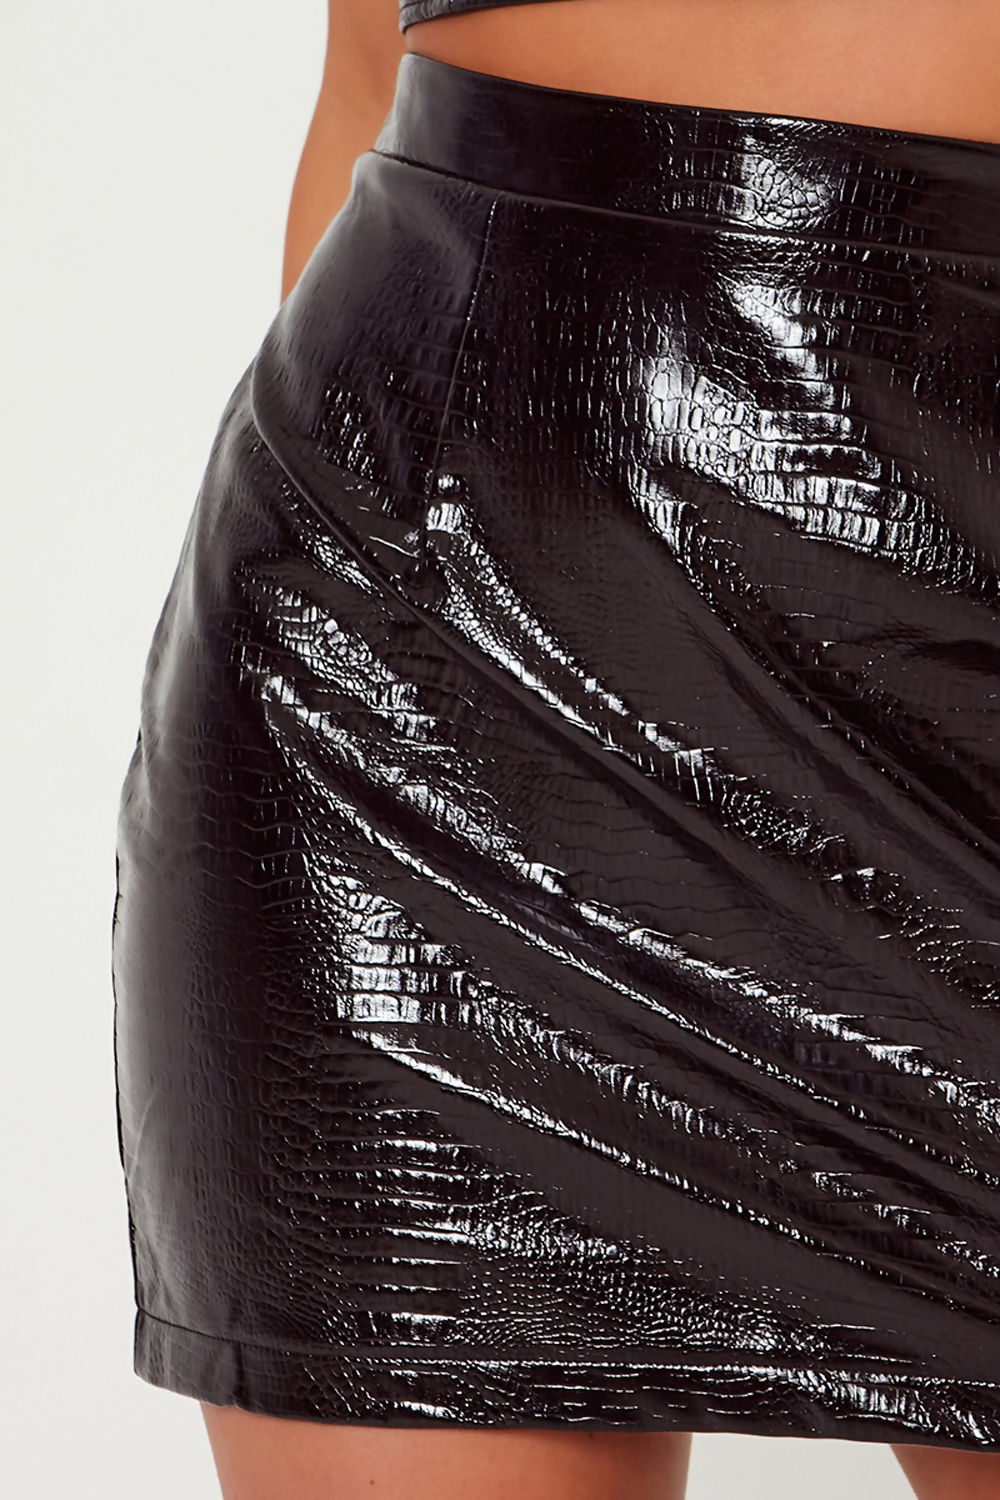 CS01-CS02-CO-ORD-DETAIL-2.jpg